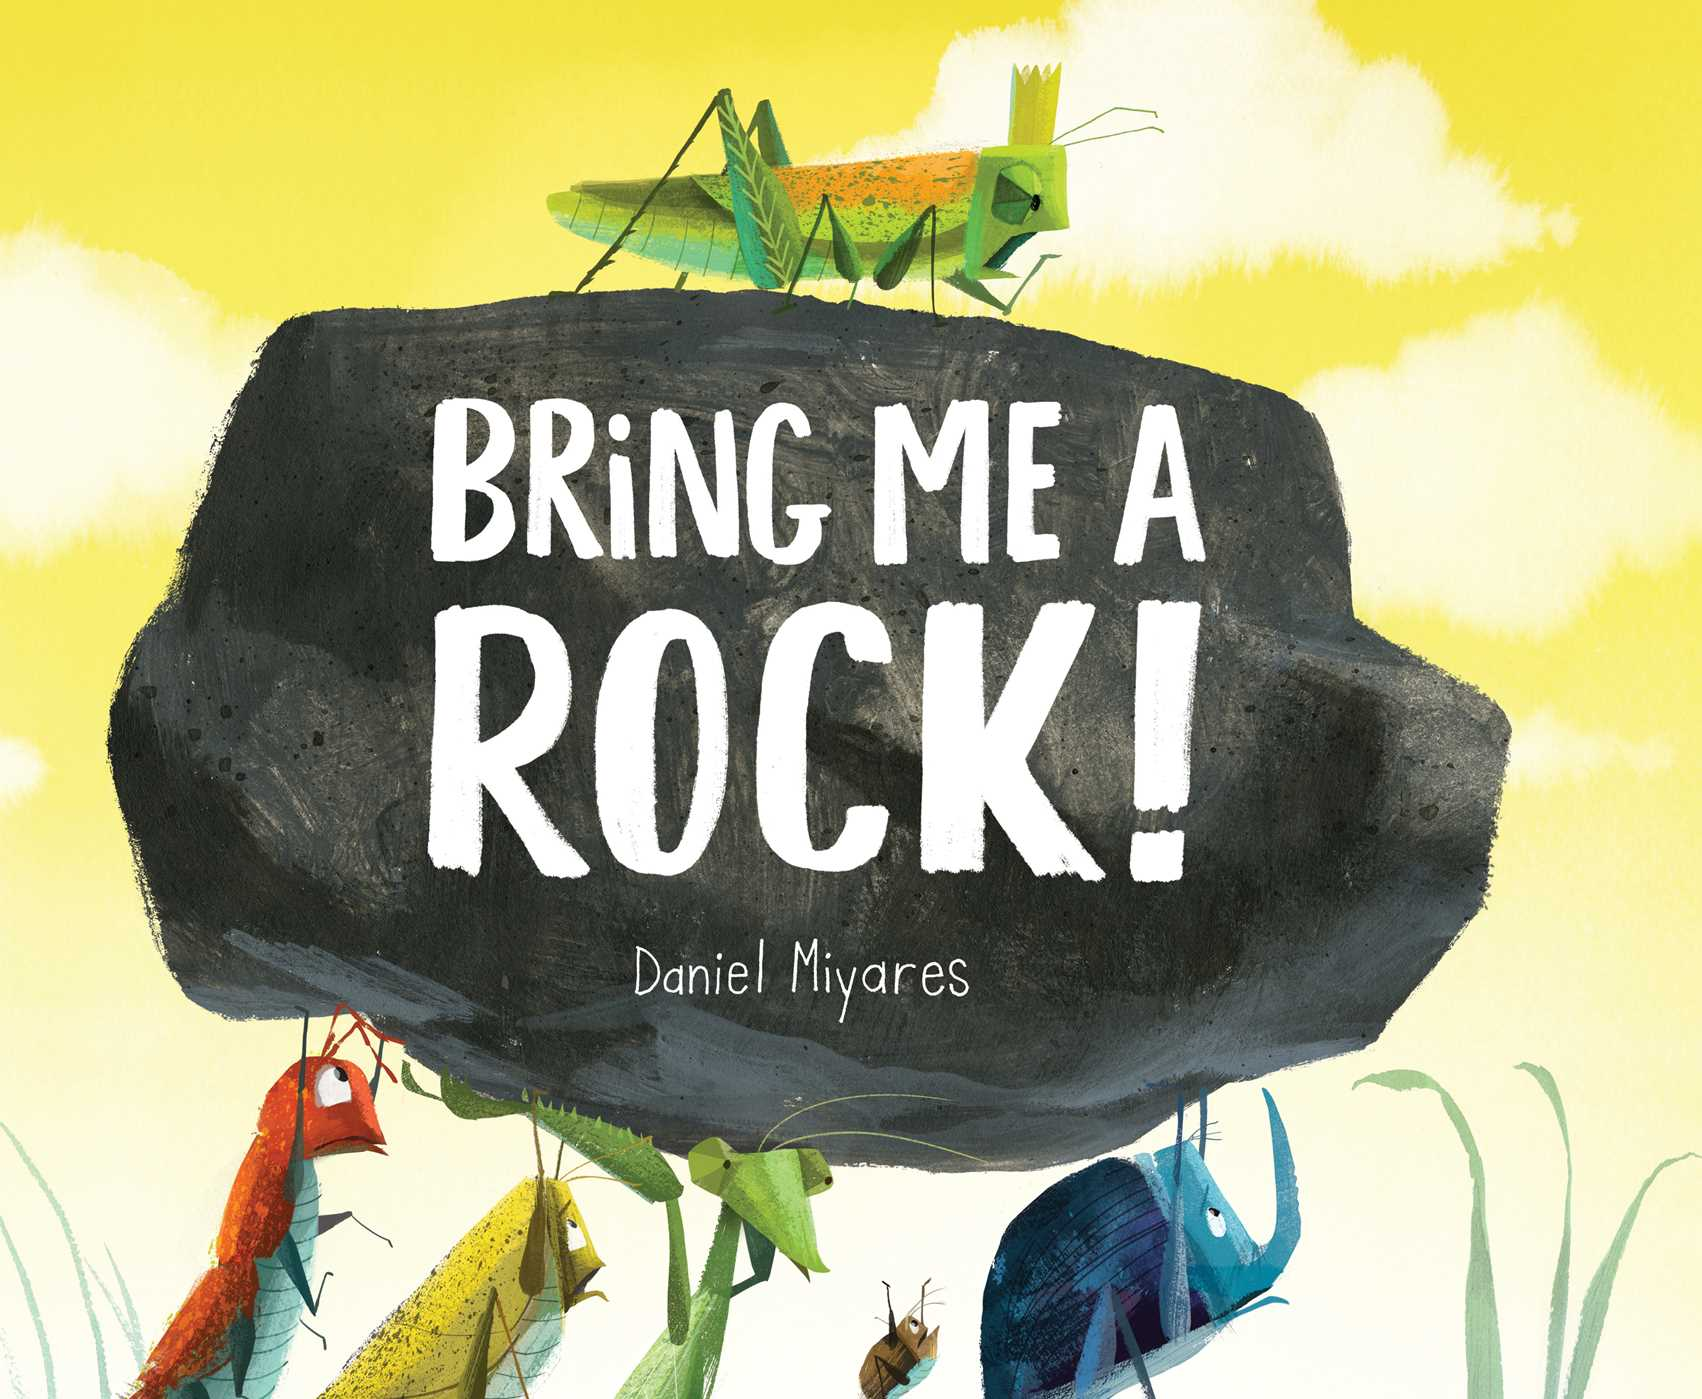 BRING ME A ROCK! by Daniel Miyares, who also wrote and illustrated PARDON ME! and FLOAT. While editorial me objects to exclamation points in book titles, the childish part of me just loves 'em.